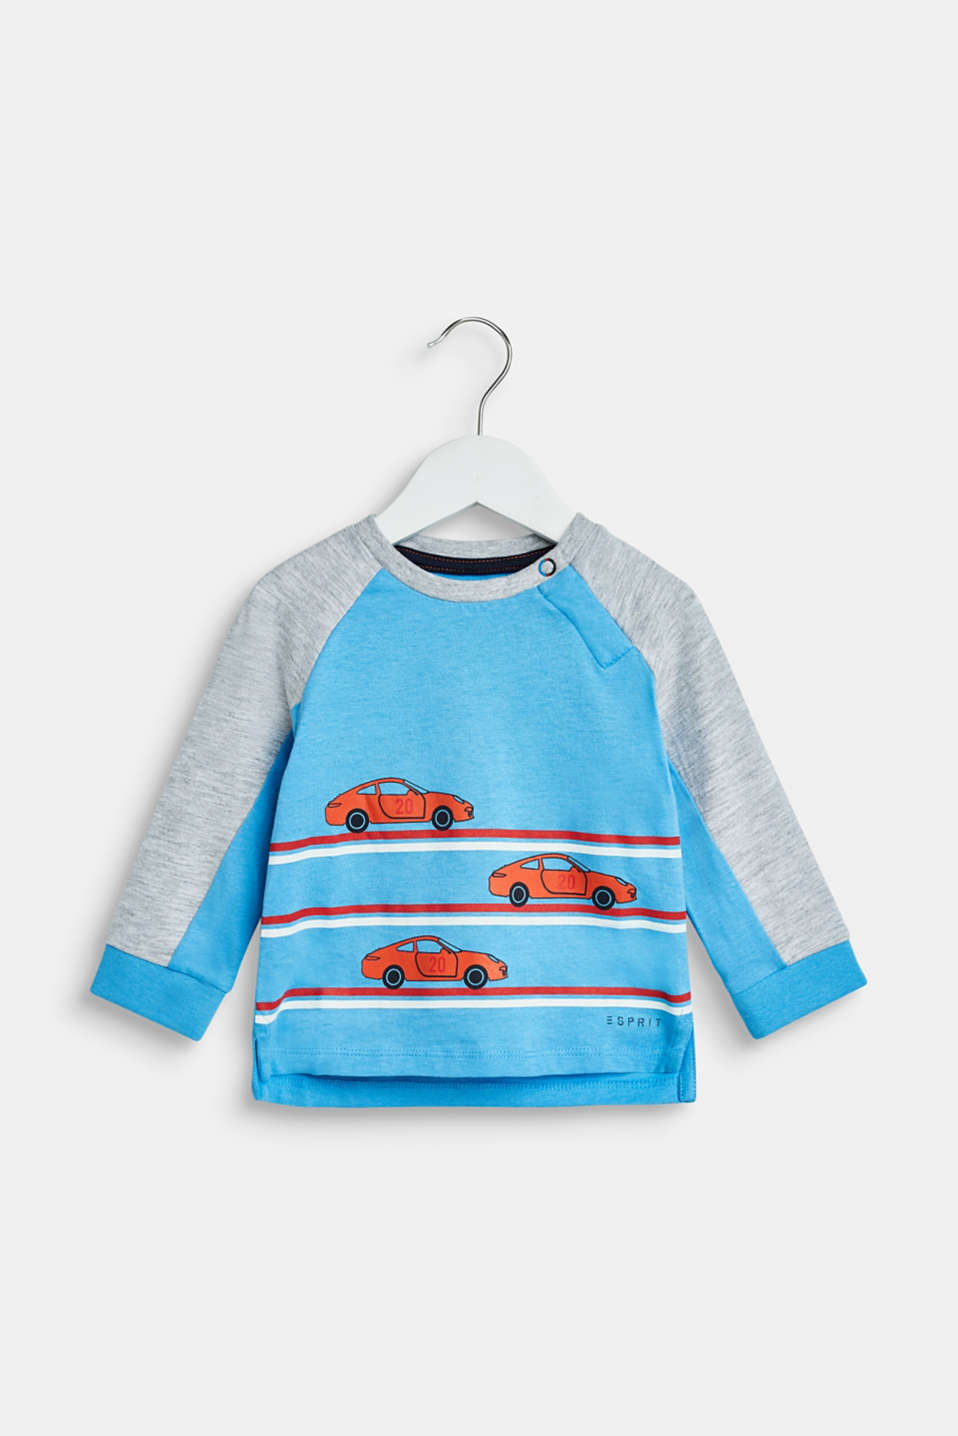 Esprit - Colour block long sleeve top with a car print